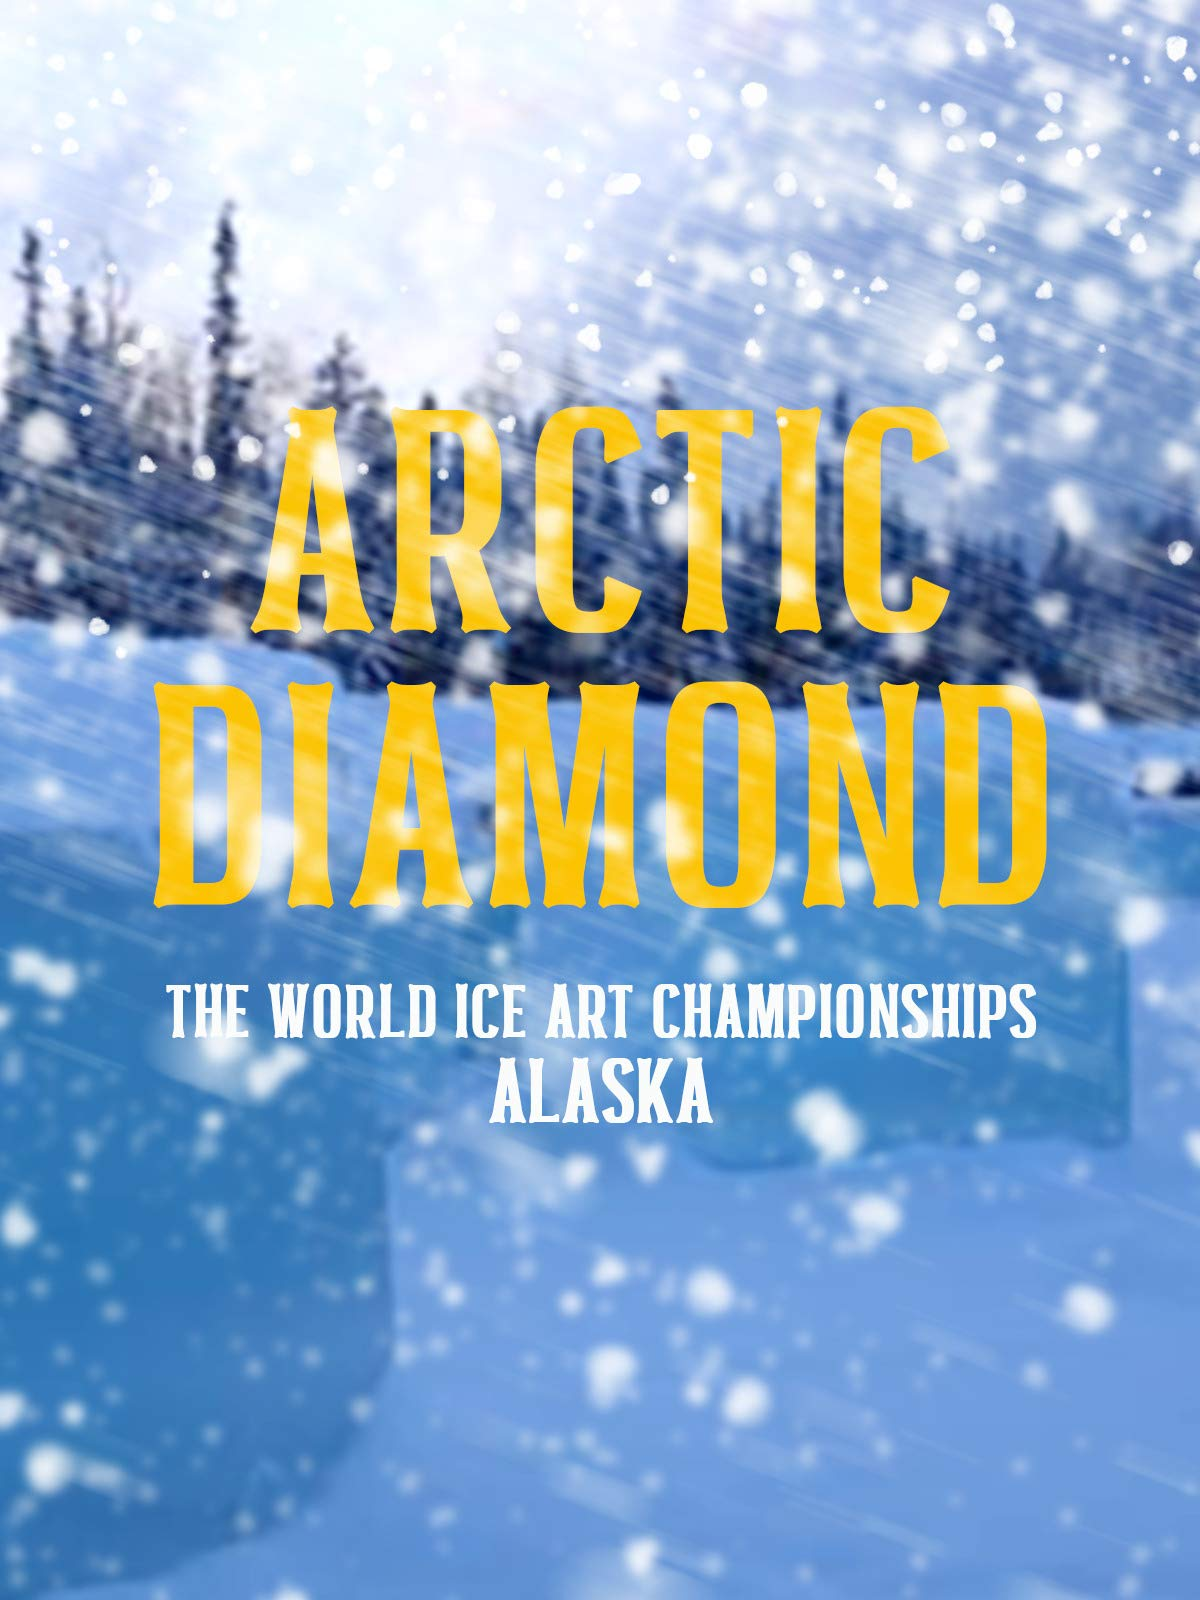 Arctic Diamond